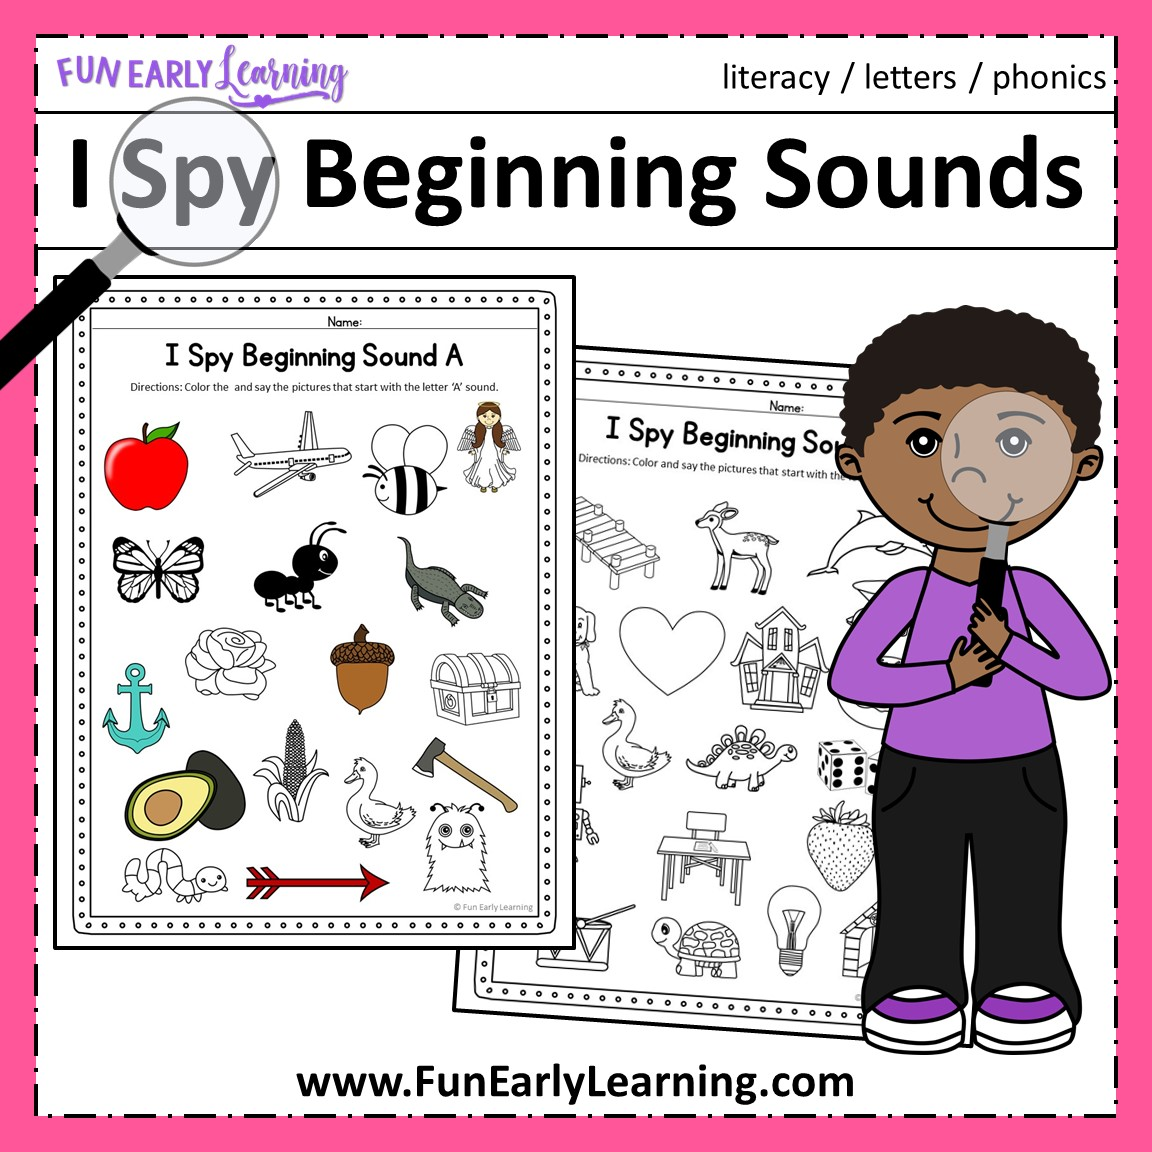 hight resolution of I Spy Beginning Sounds Activity - Free Printable for Speech and Apraxia